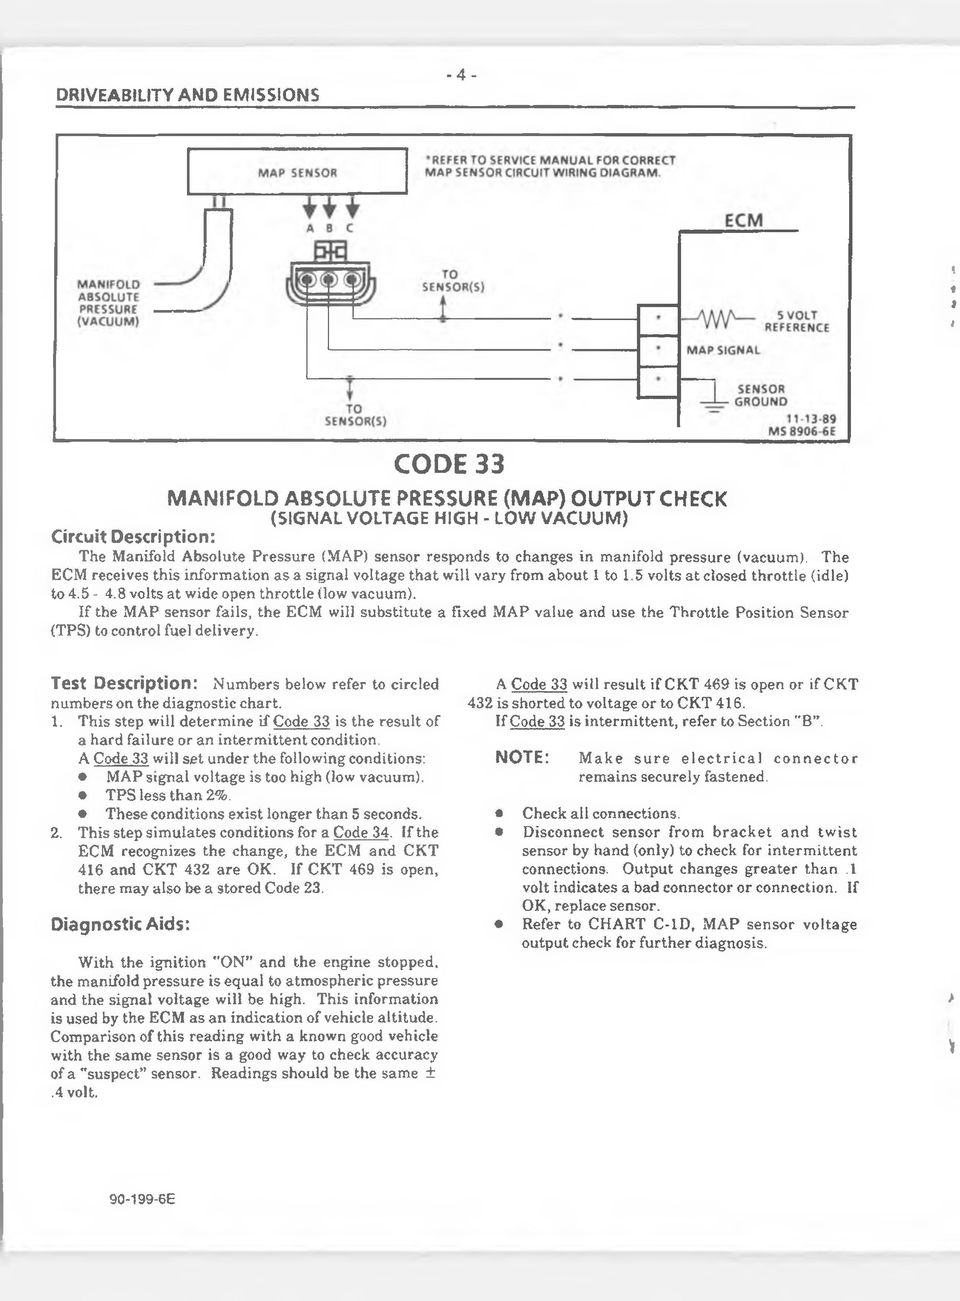 1990 Dealer Service Manual Update Bulletin Supplement Pdf. Pressure Vacuum The Ecm Receives This Information As A Signal Voltage That Will. Wiring. Mjm 700r4 Wiring Schematic At Scoala.co